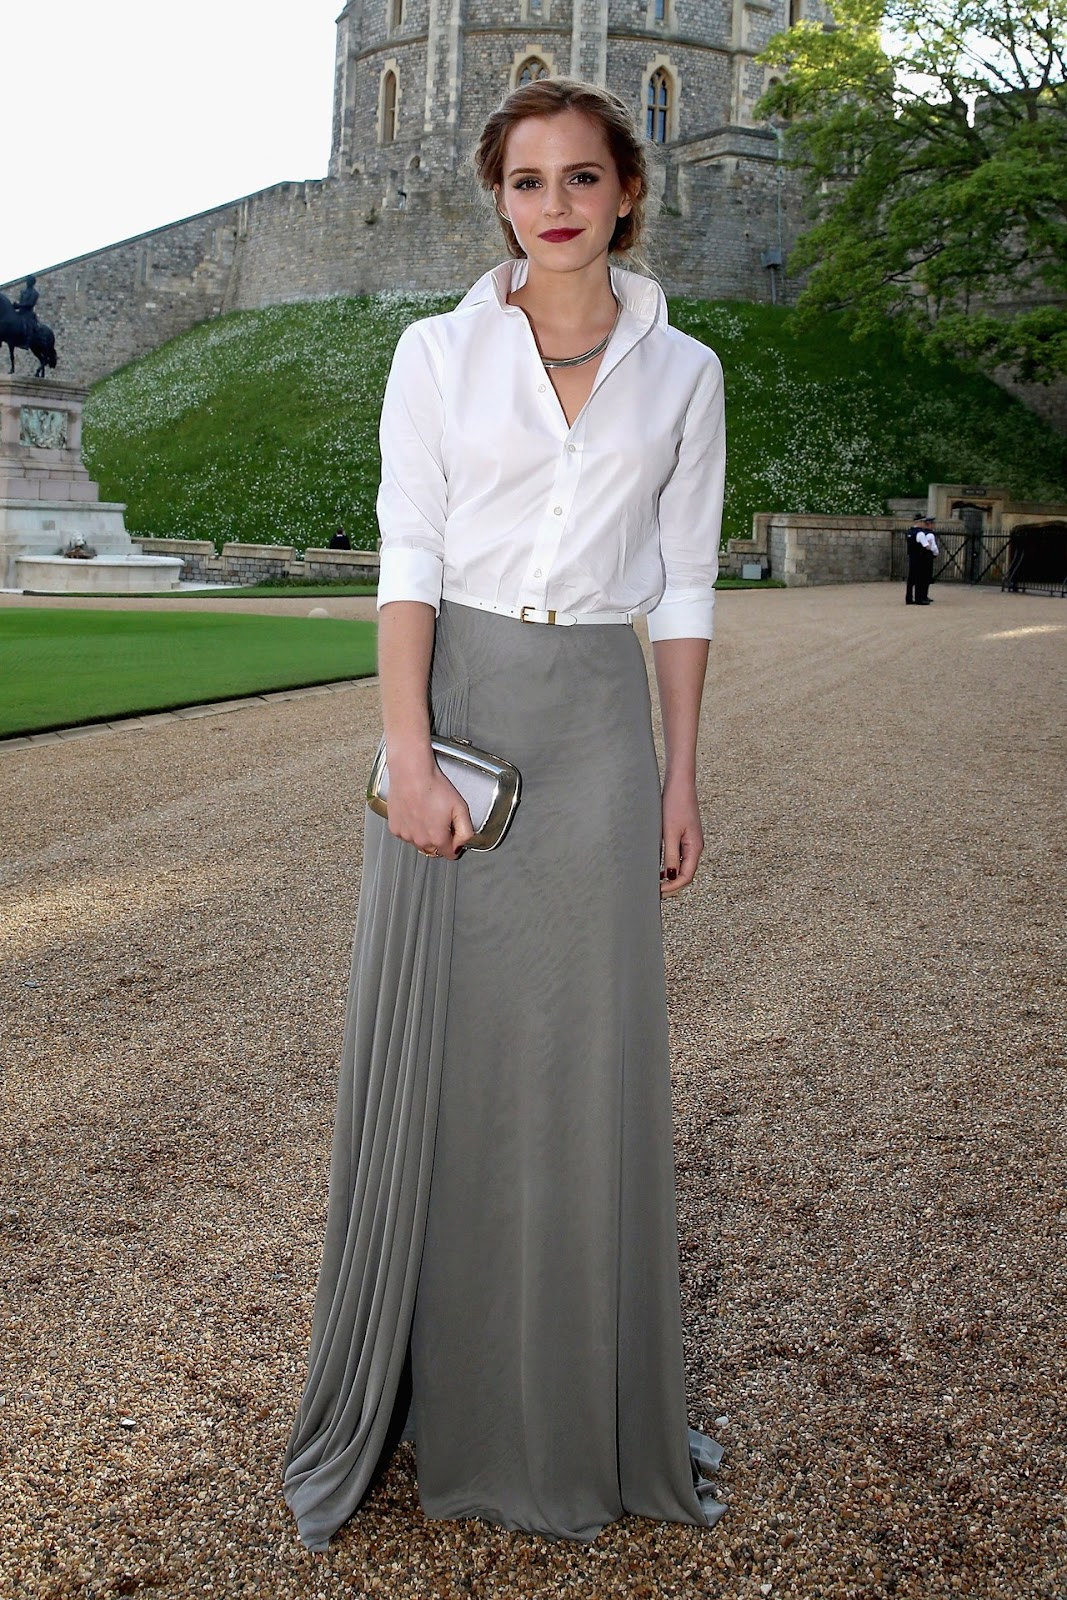 Emma Watson in White Top and Grey Skirt